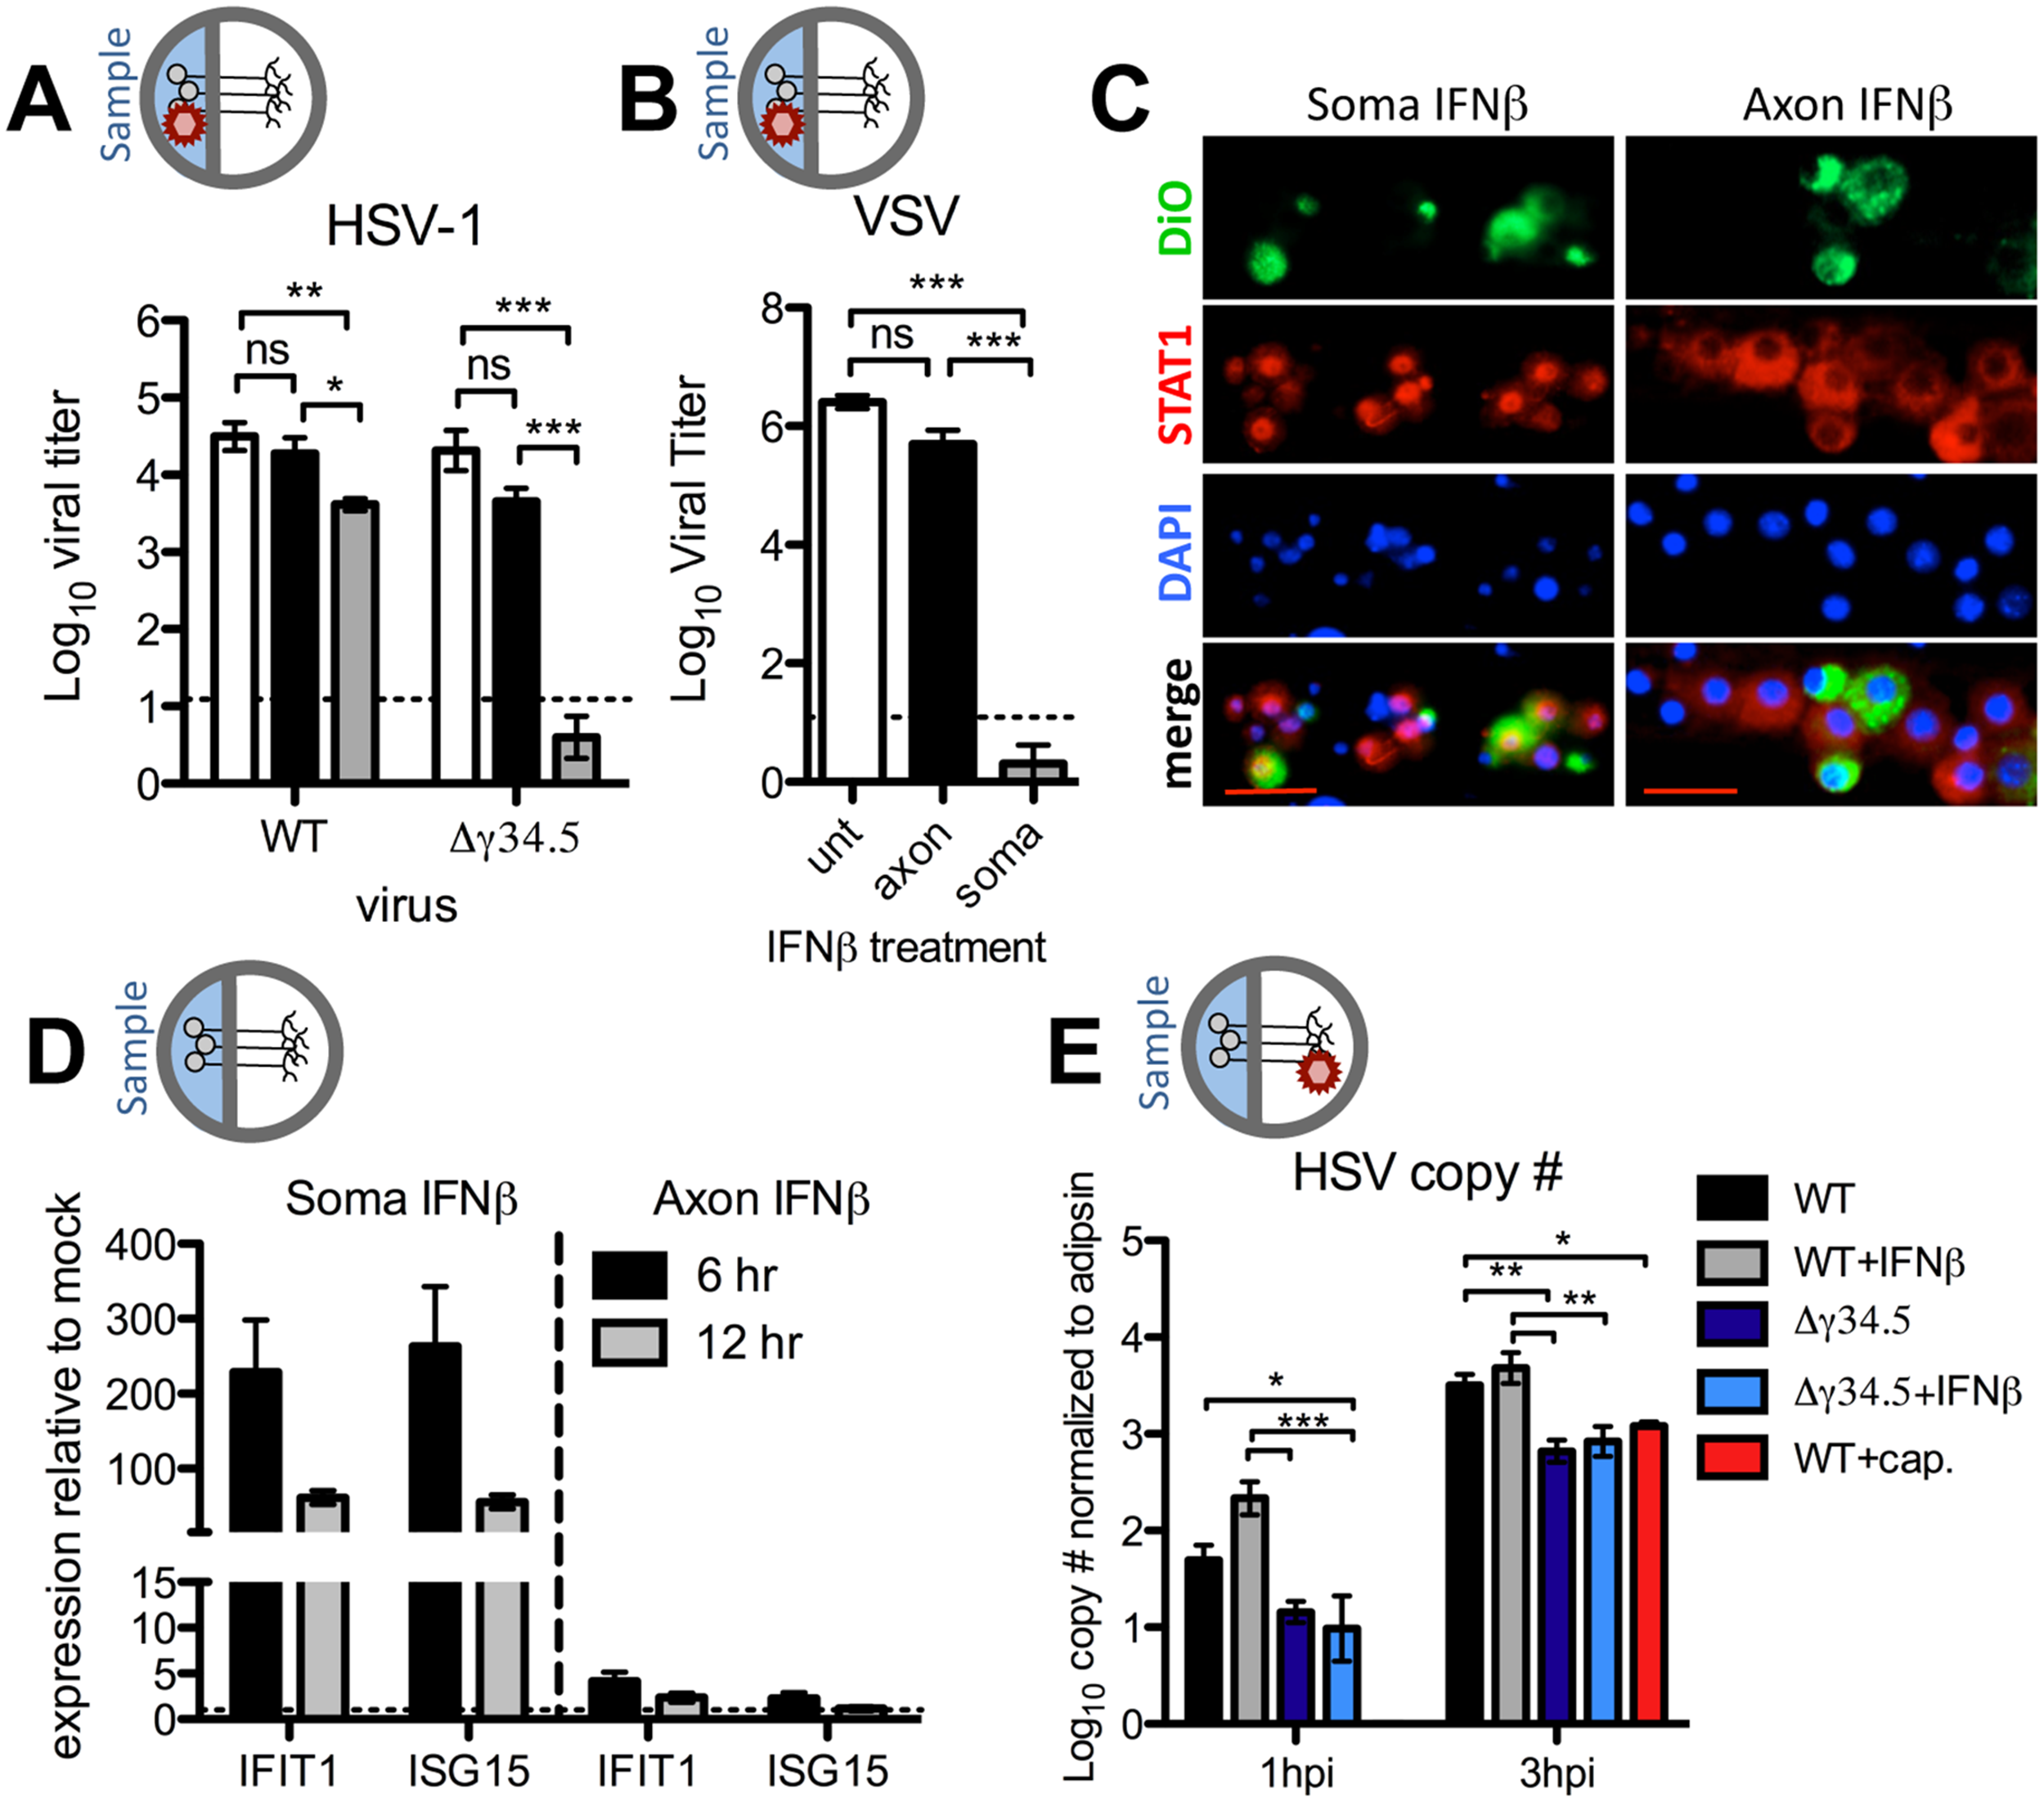 Axonal IFNβ signaling restricts HSV-1 titers through mechanisms independent of establishment of an antiviral state at the soma.